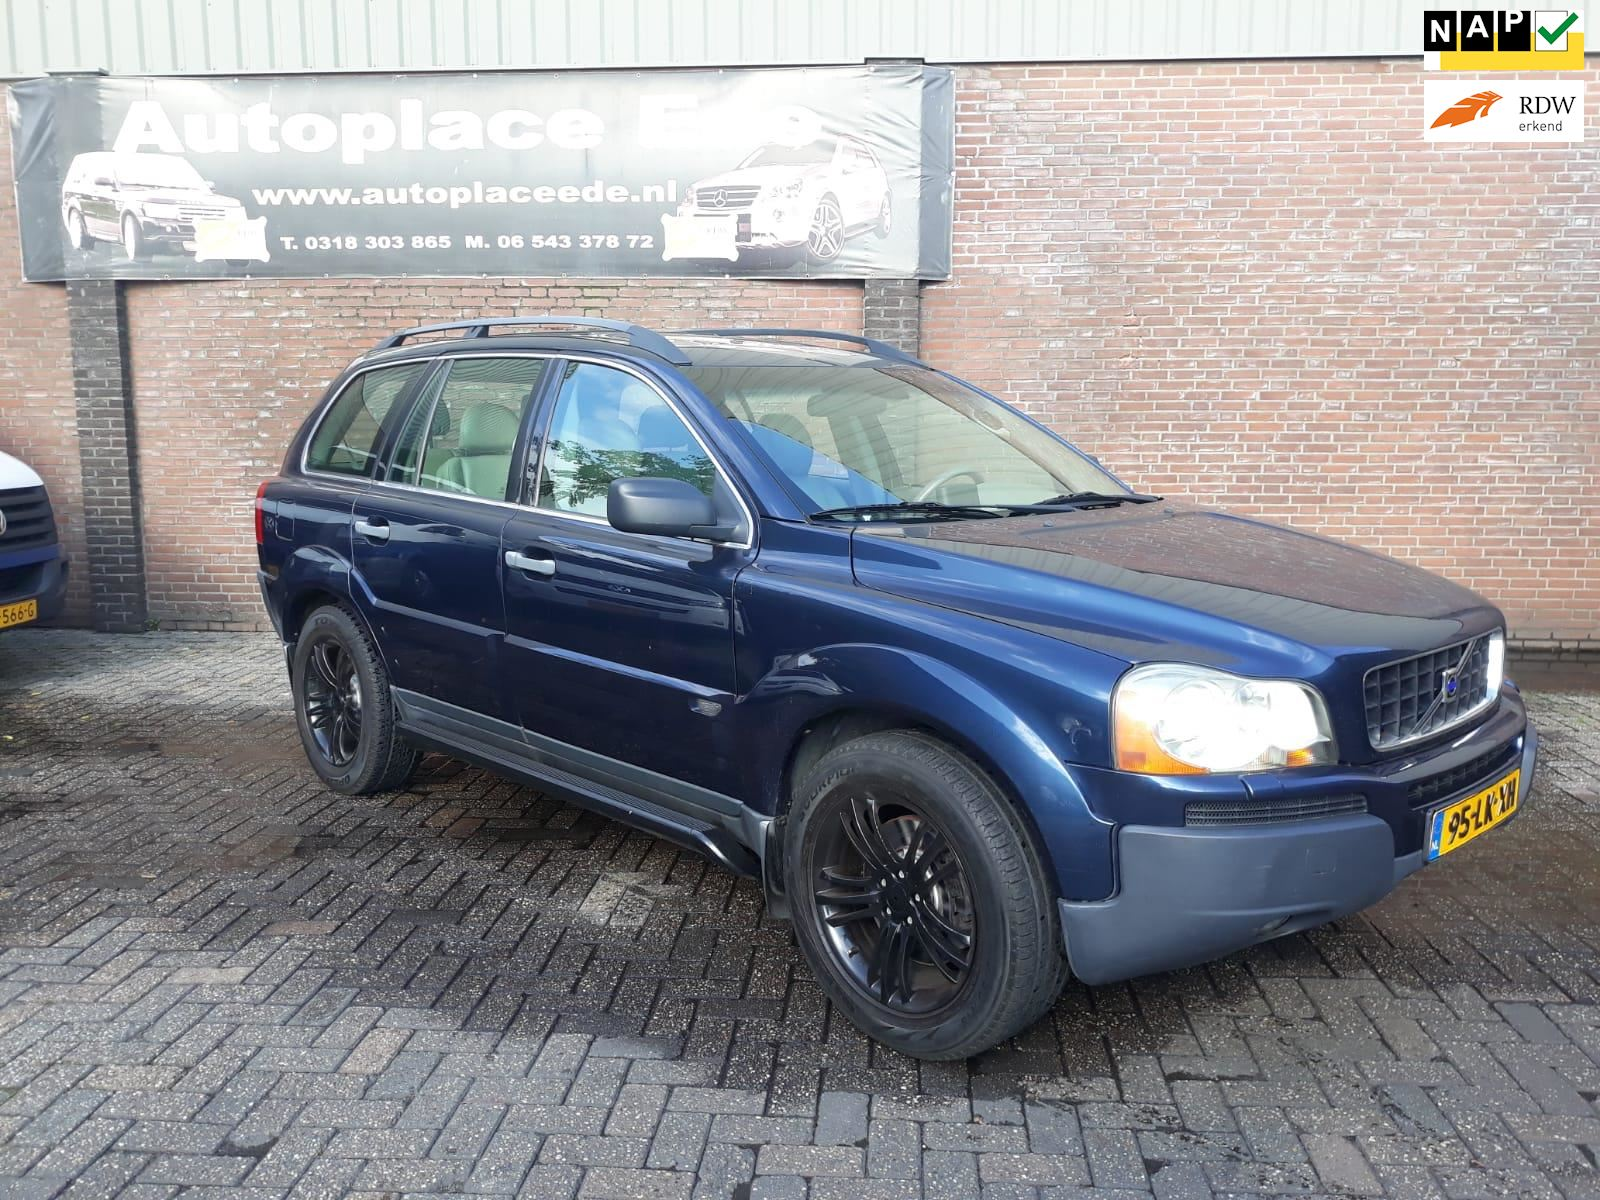 Volvo XC90 occasion - autoplaceede